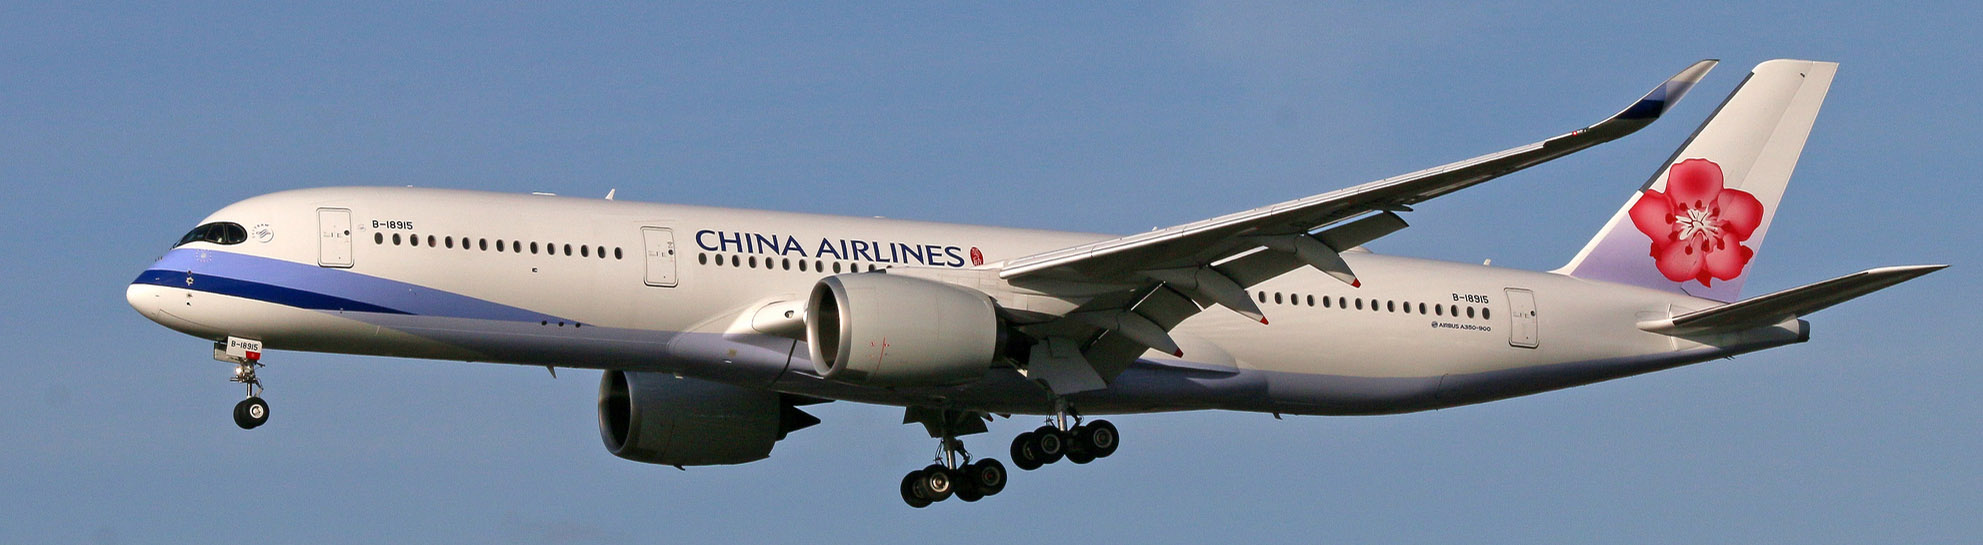 China Airlines A350-900 on final approach